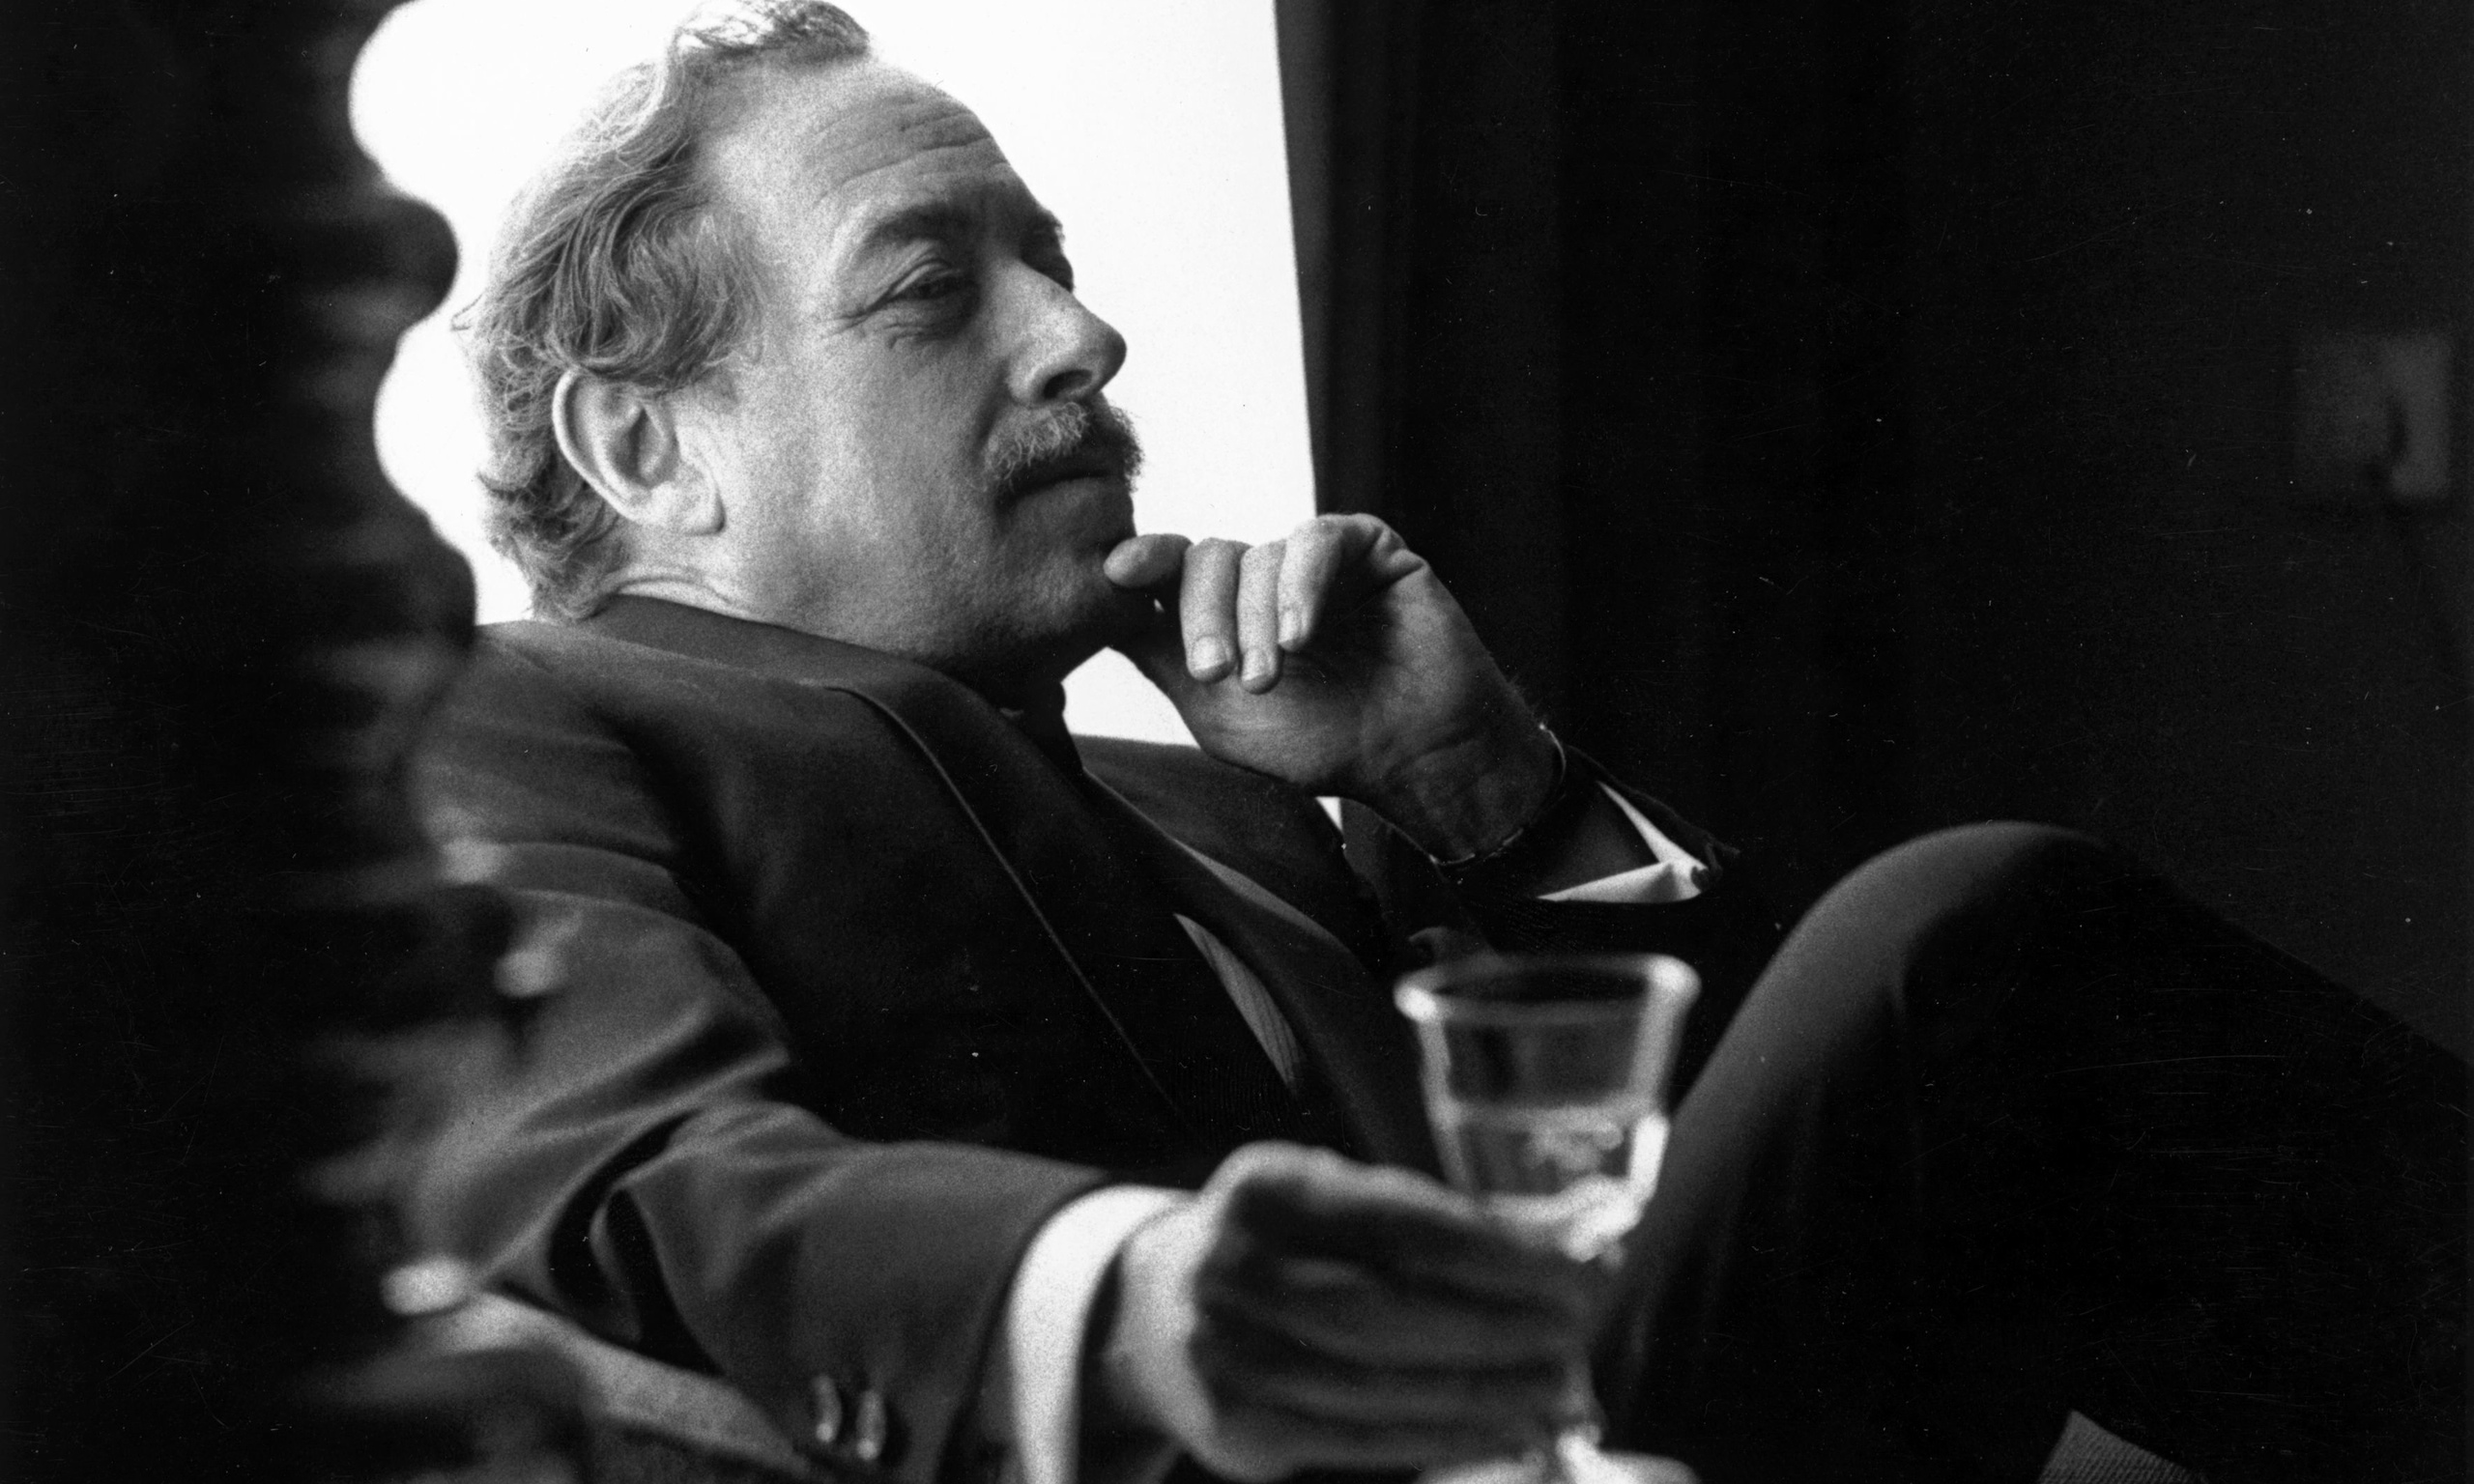 tennesee williams Get information, facts, and pictures about tennessee williams at encyclopediacom make research projects and school reports about tennessee williams easy with.